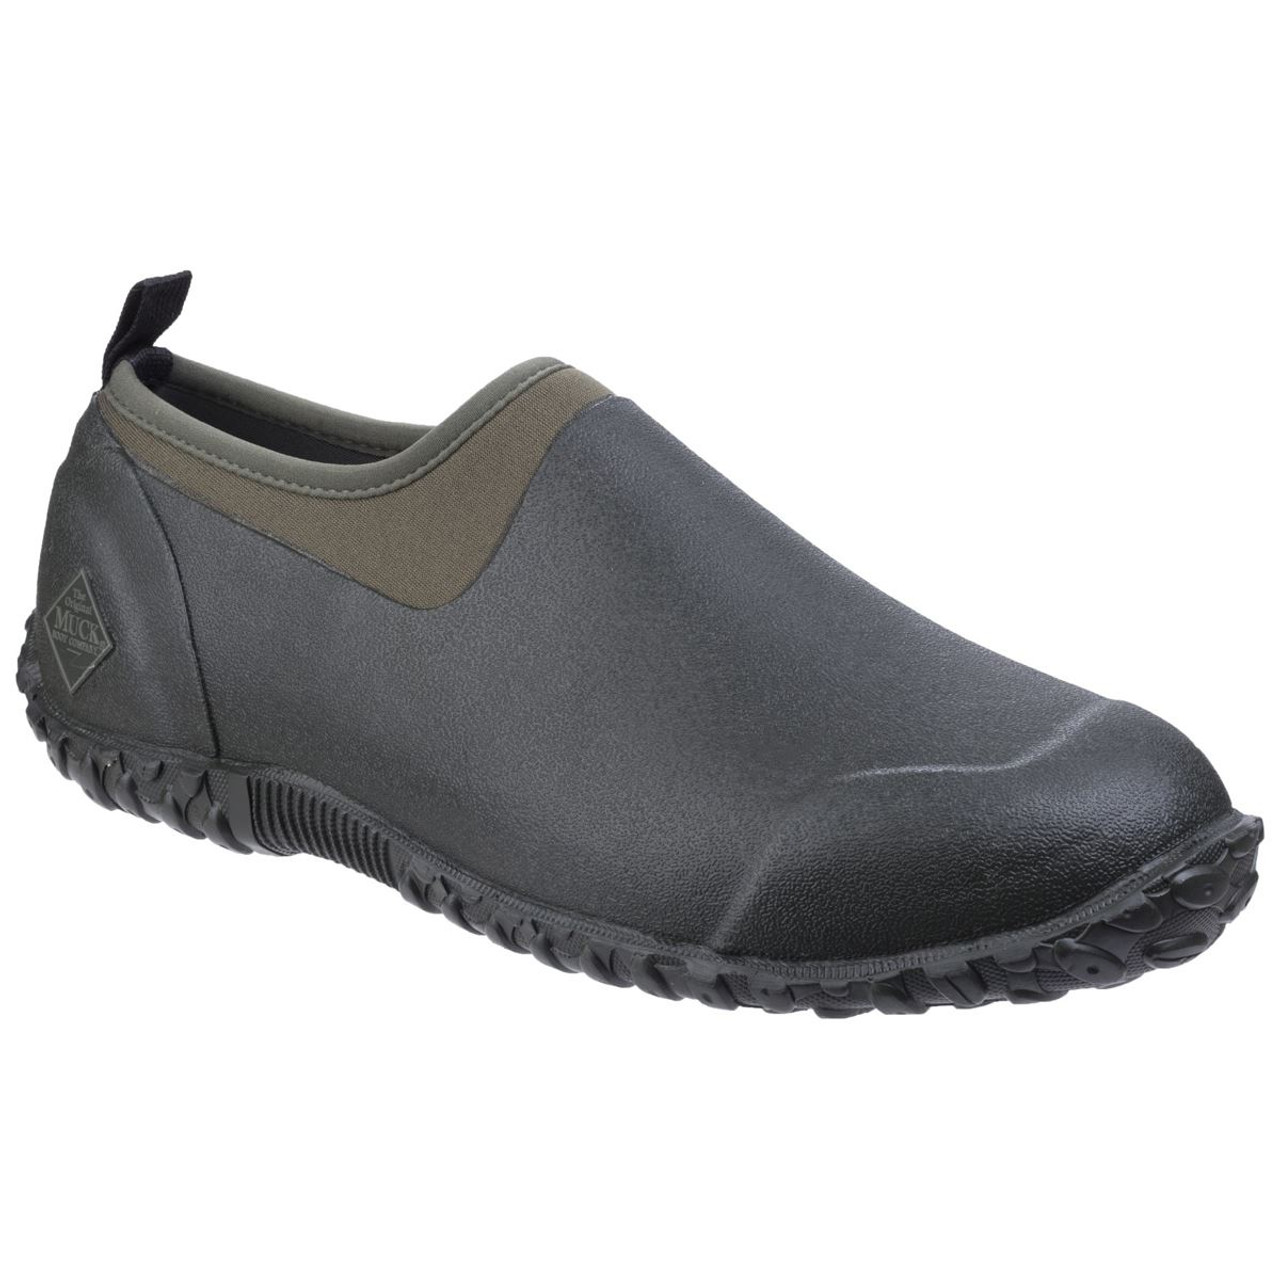 Muck Boot Mens Muckster II Low Shoes